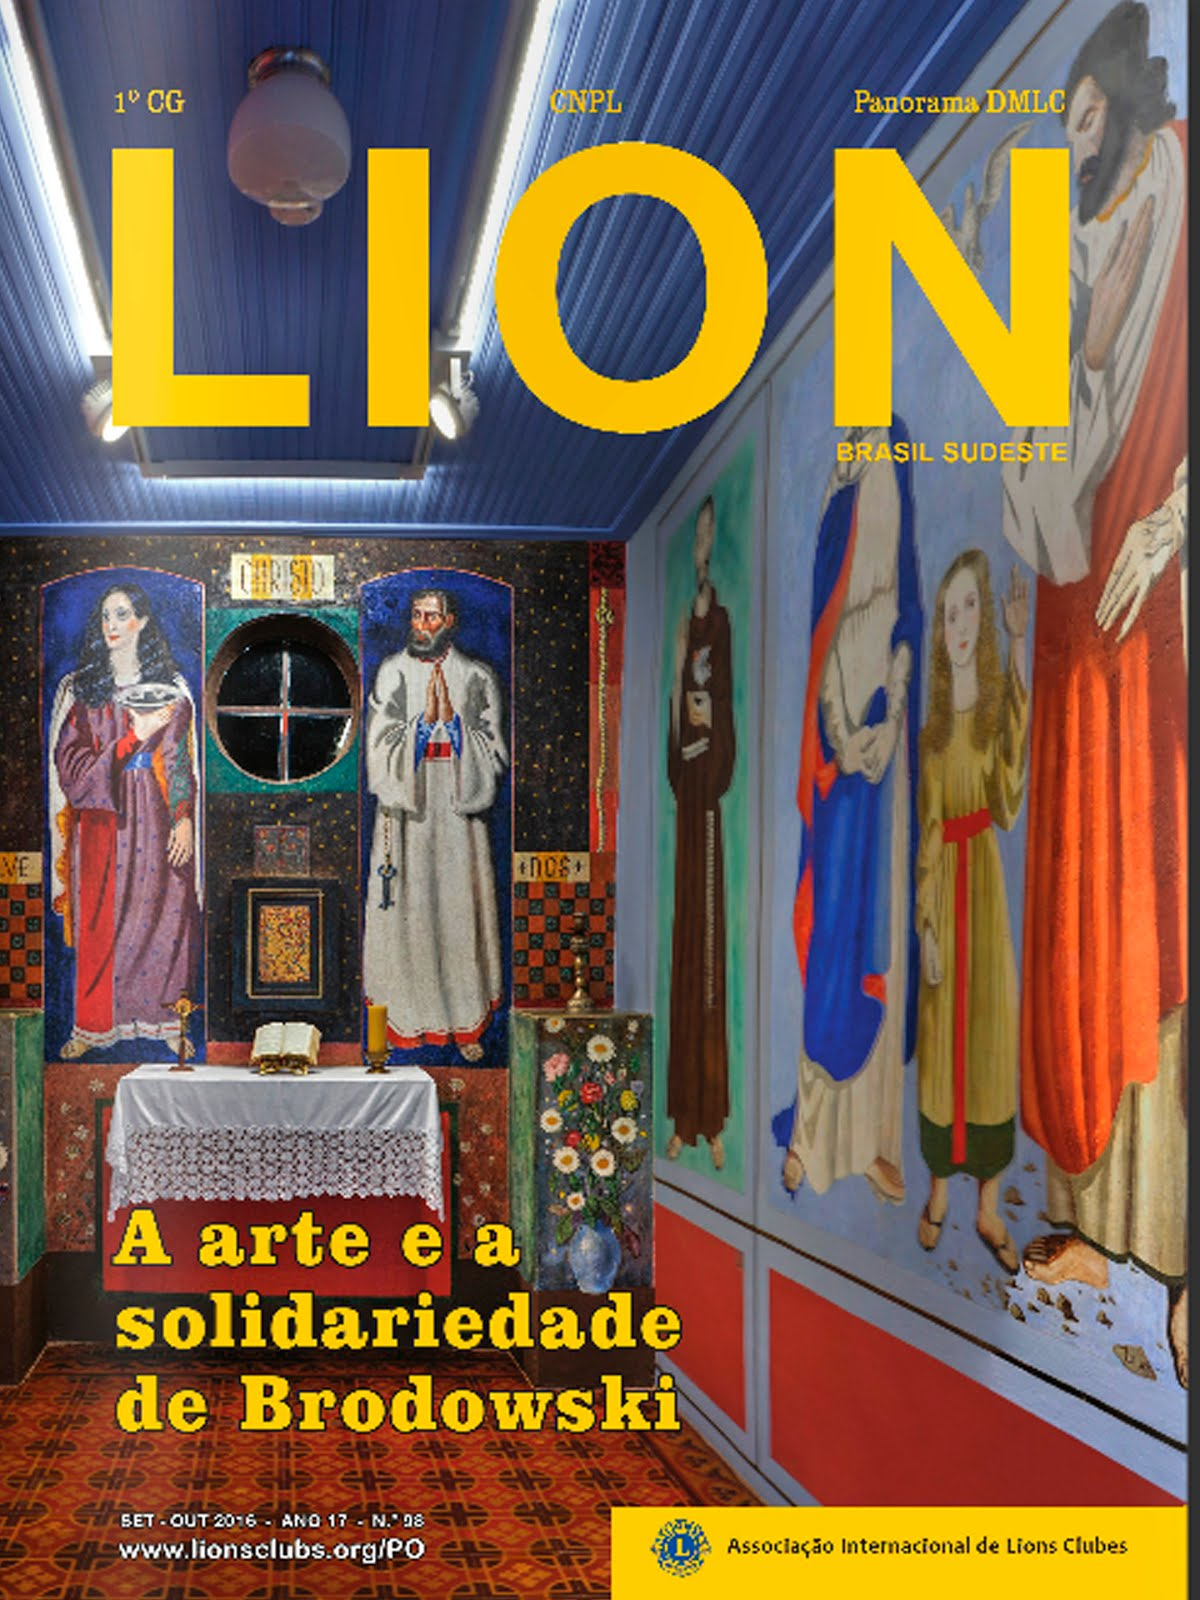 THE LION SUDESTE